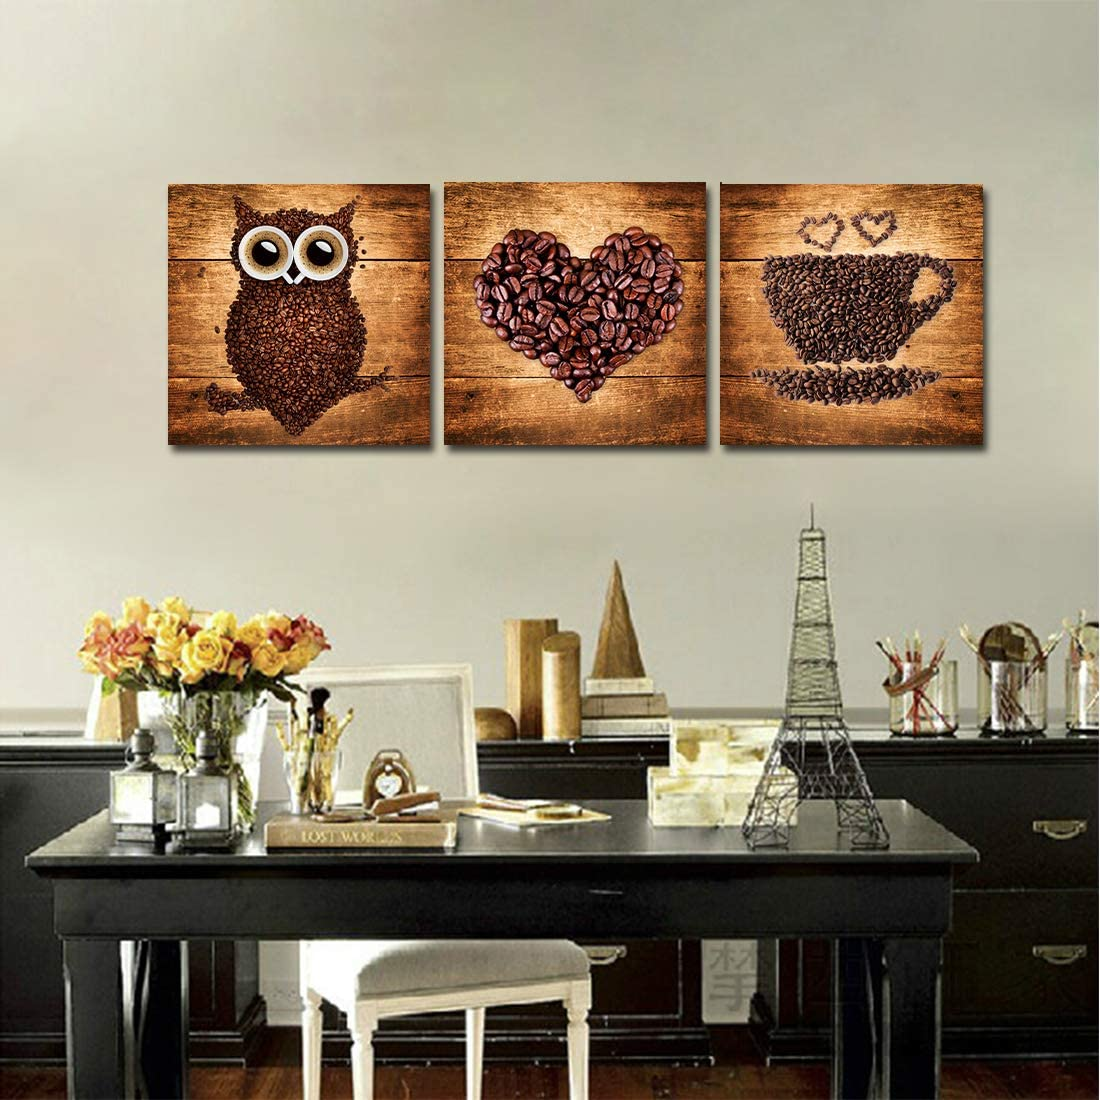 A Cup of Tea Creative Coffee Bean Painting Canvas Print Owl Heart Cup Picture Wall Art for Home Kitchen Cafe Bar Restaruant Wall Decor Modern Artwork 3pcs 12